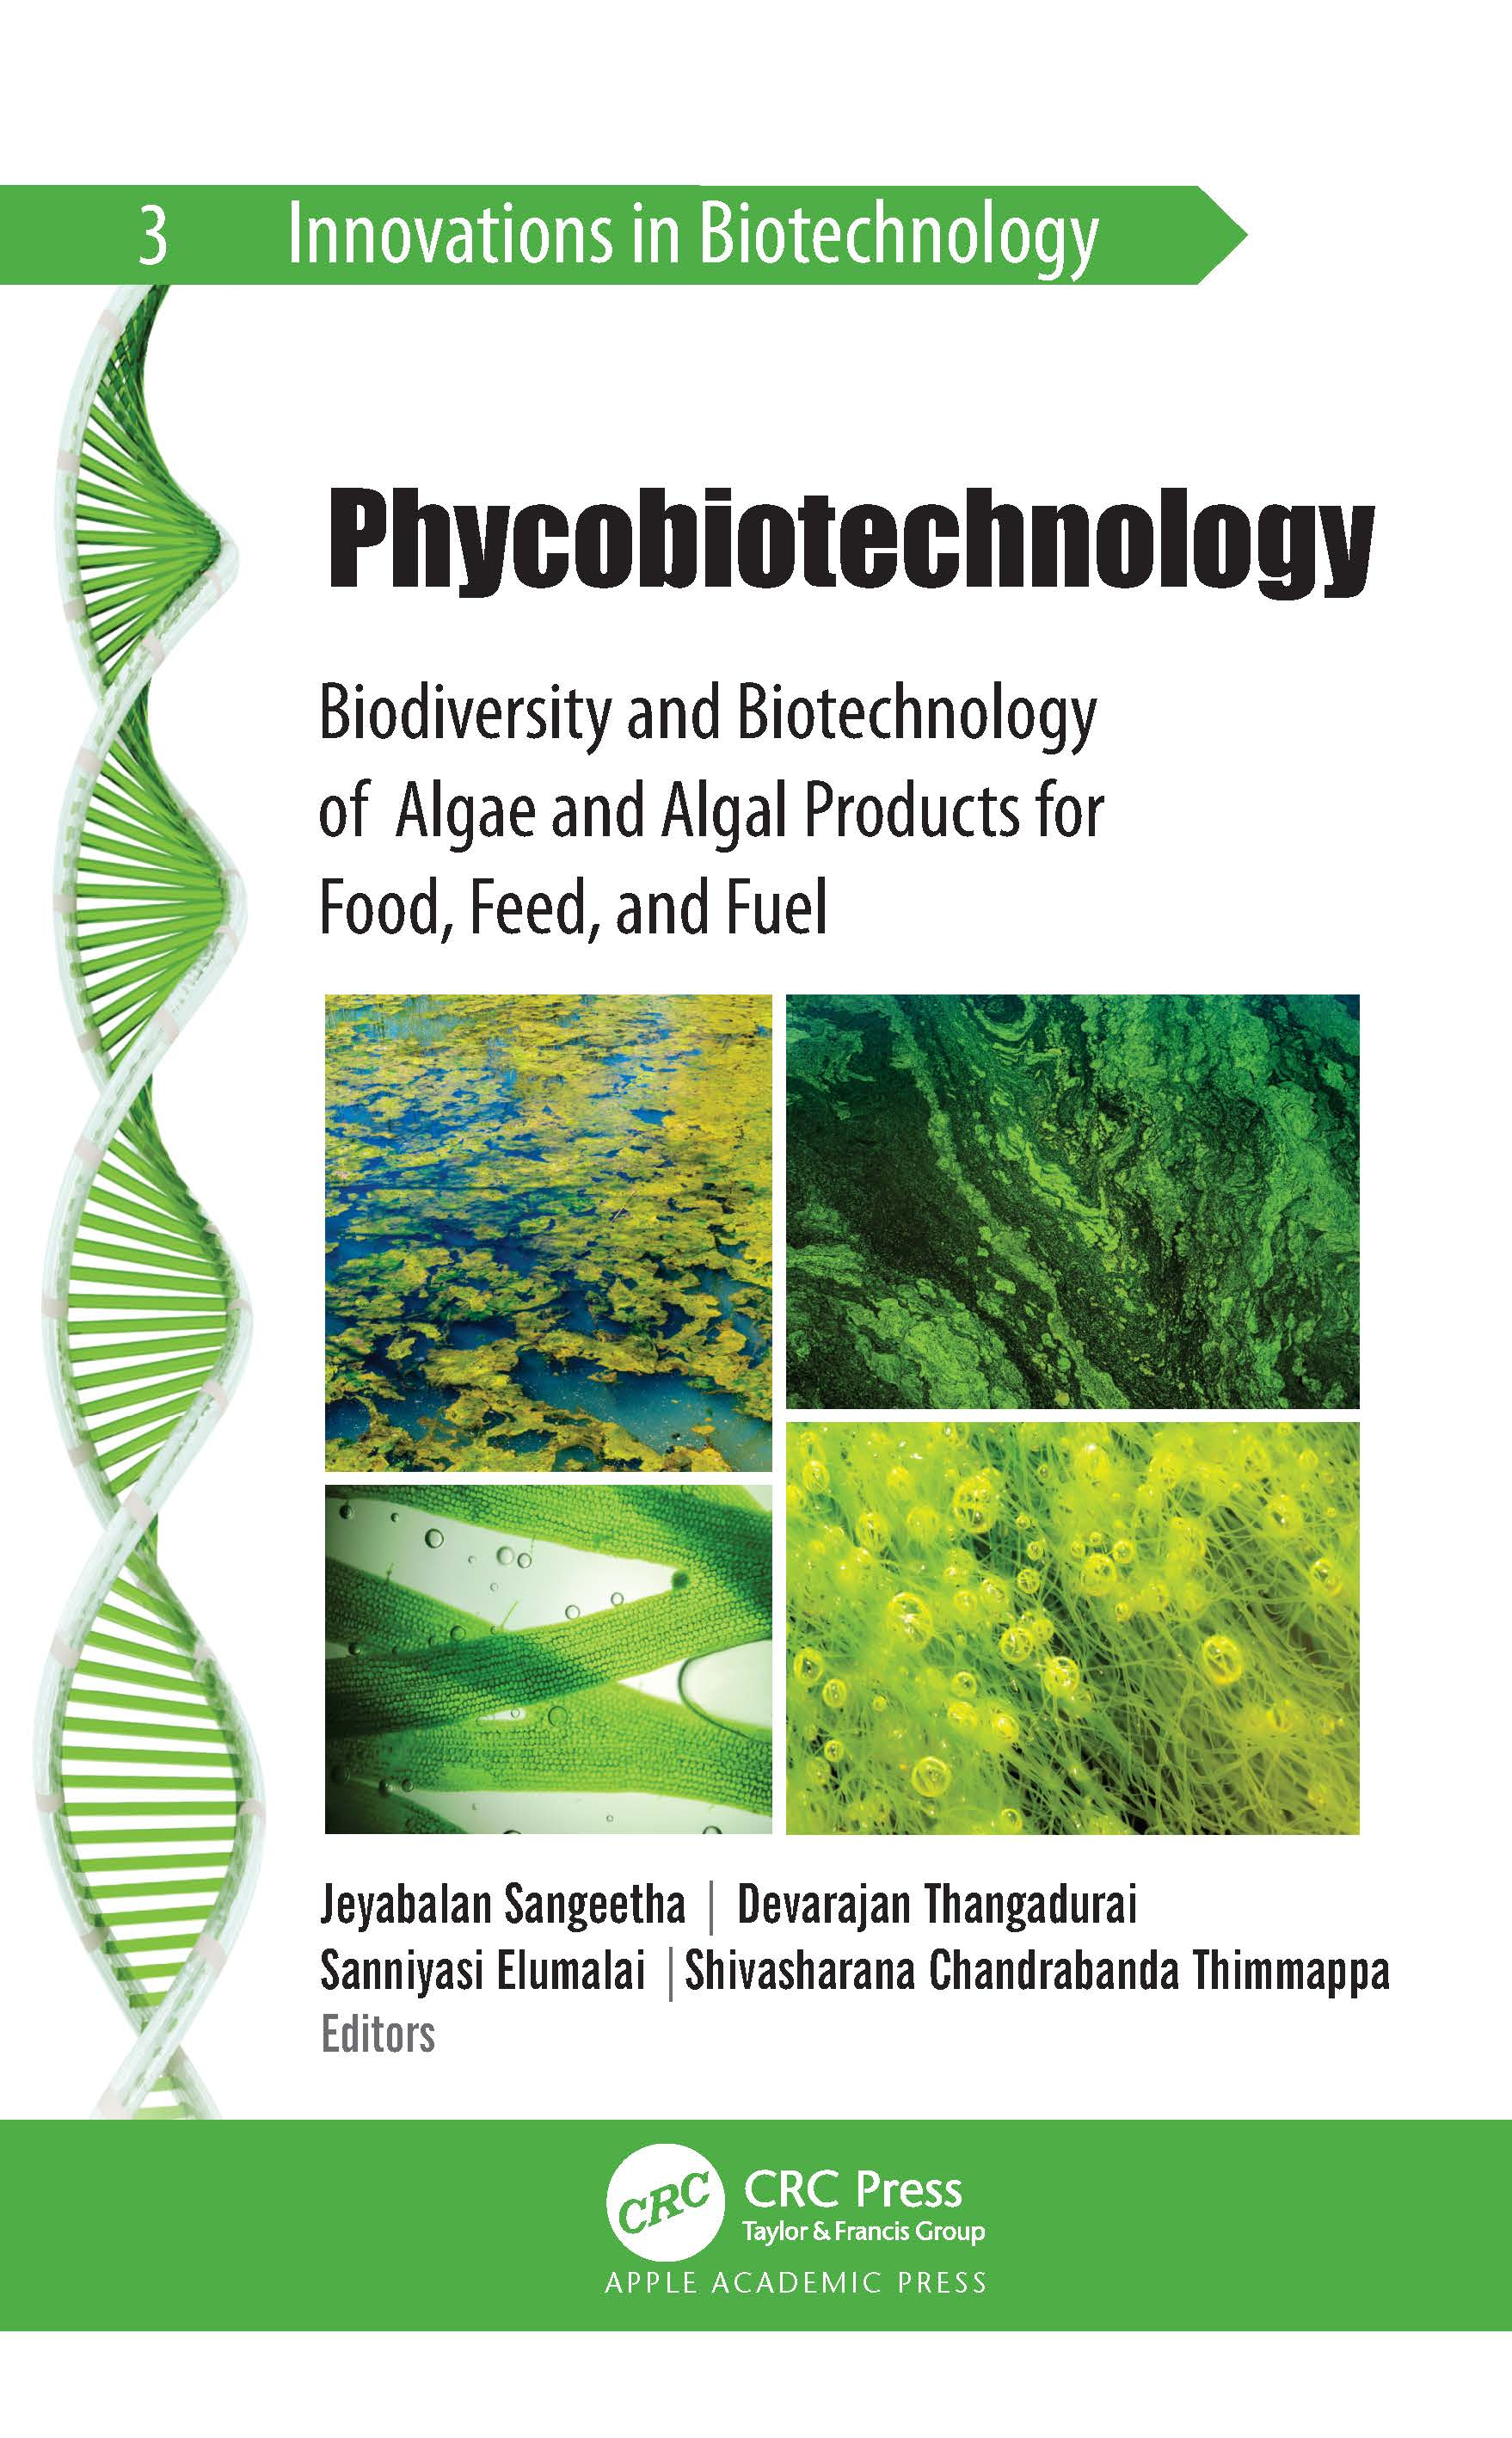 Phycobiotechnology: Biodiversity and Biotechnology of Algae and Algal Products for Food, Feed, and Fuel book cover